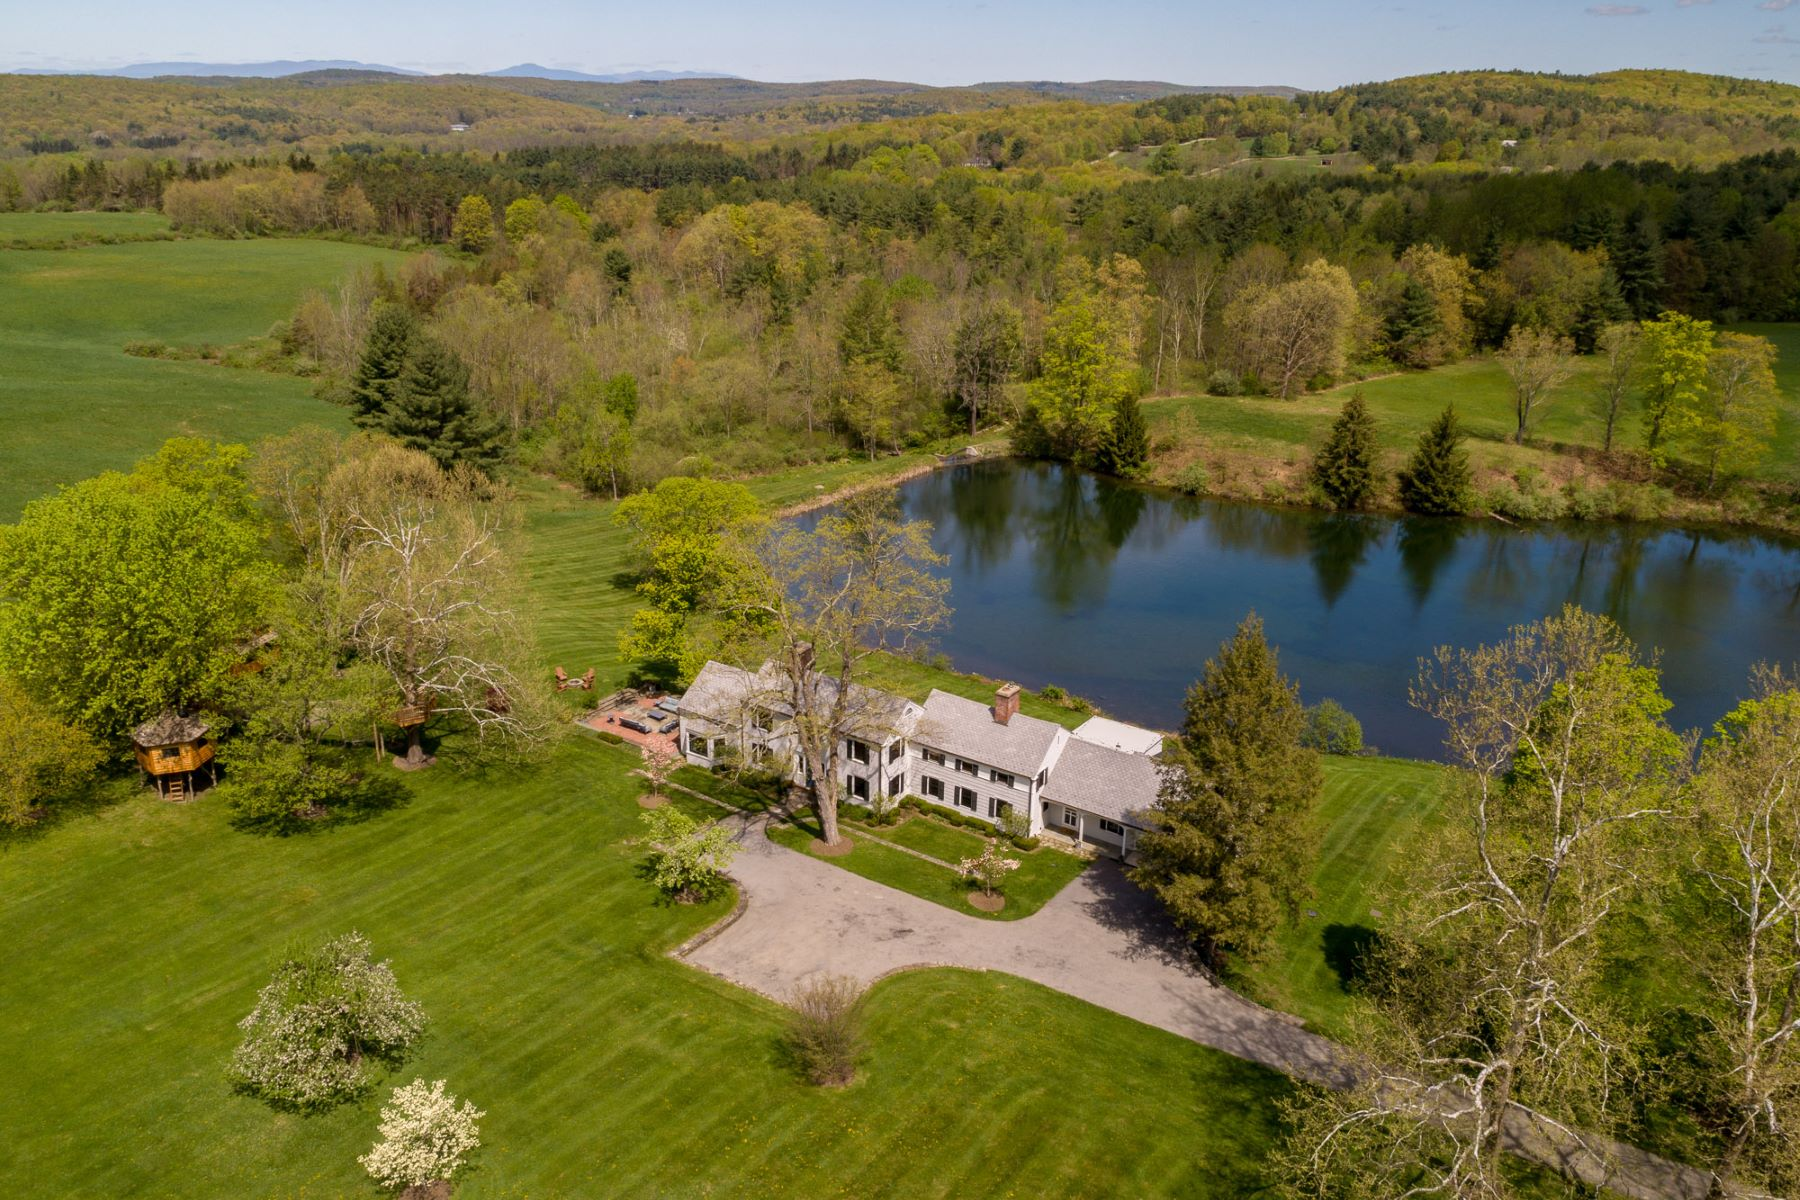 Maison unifamiliale pour l Vente à Country Retreat 749 Stanford Road Millbrook, New York 12545 États-Unis